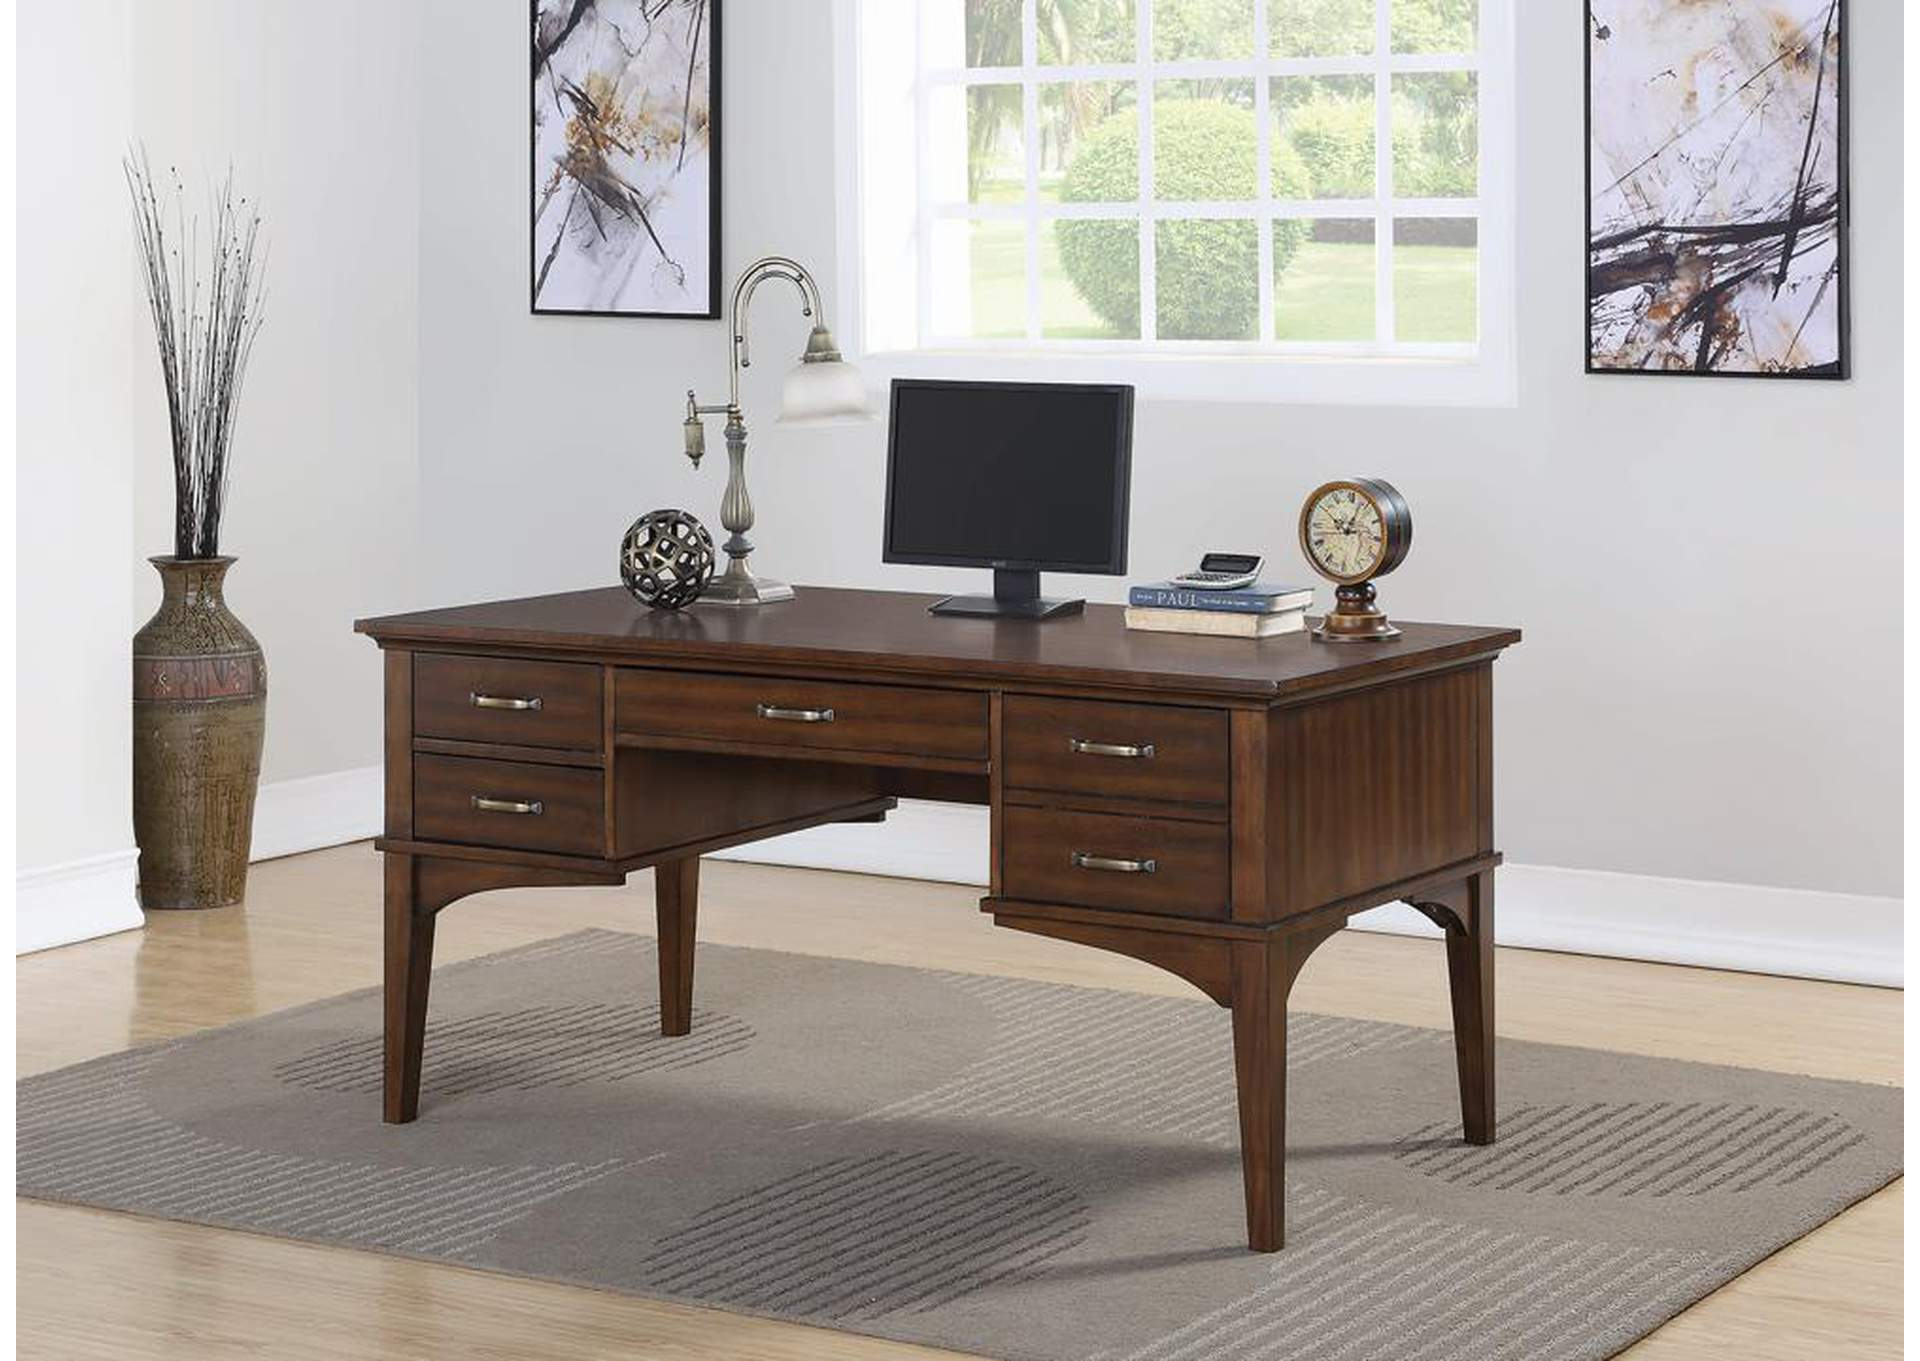 Quality Rugs Home Furnishings Federal Way Wa Golden Brown Office Desk